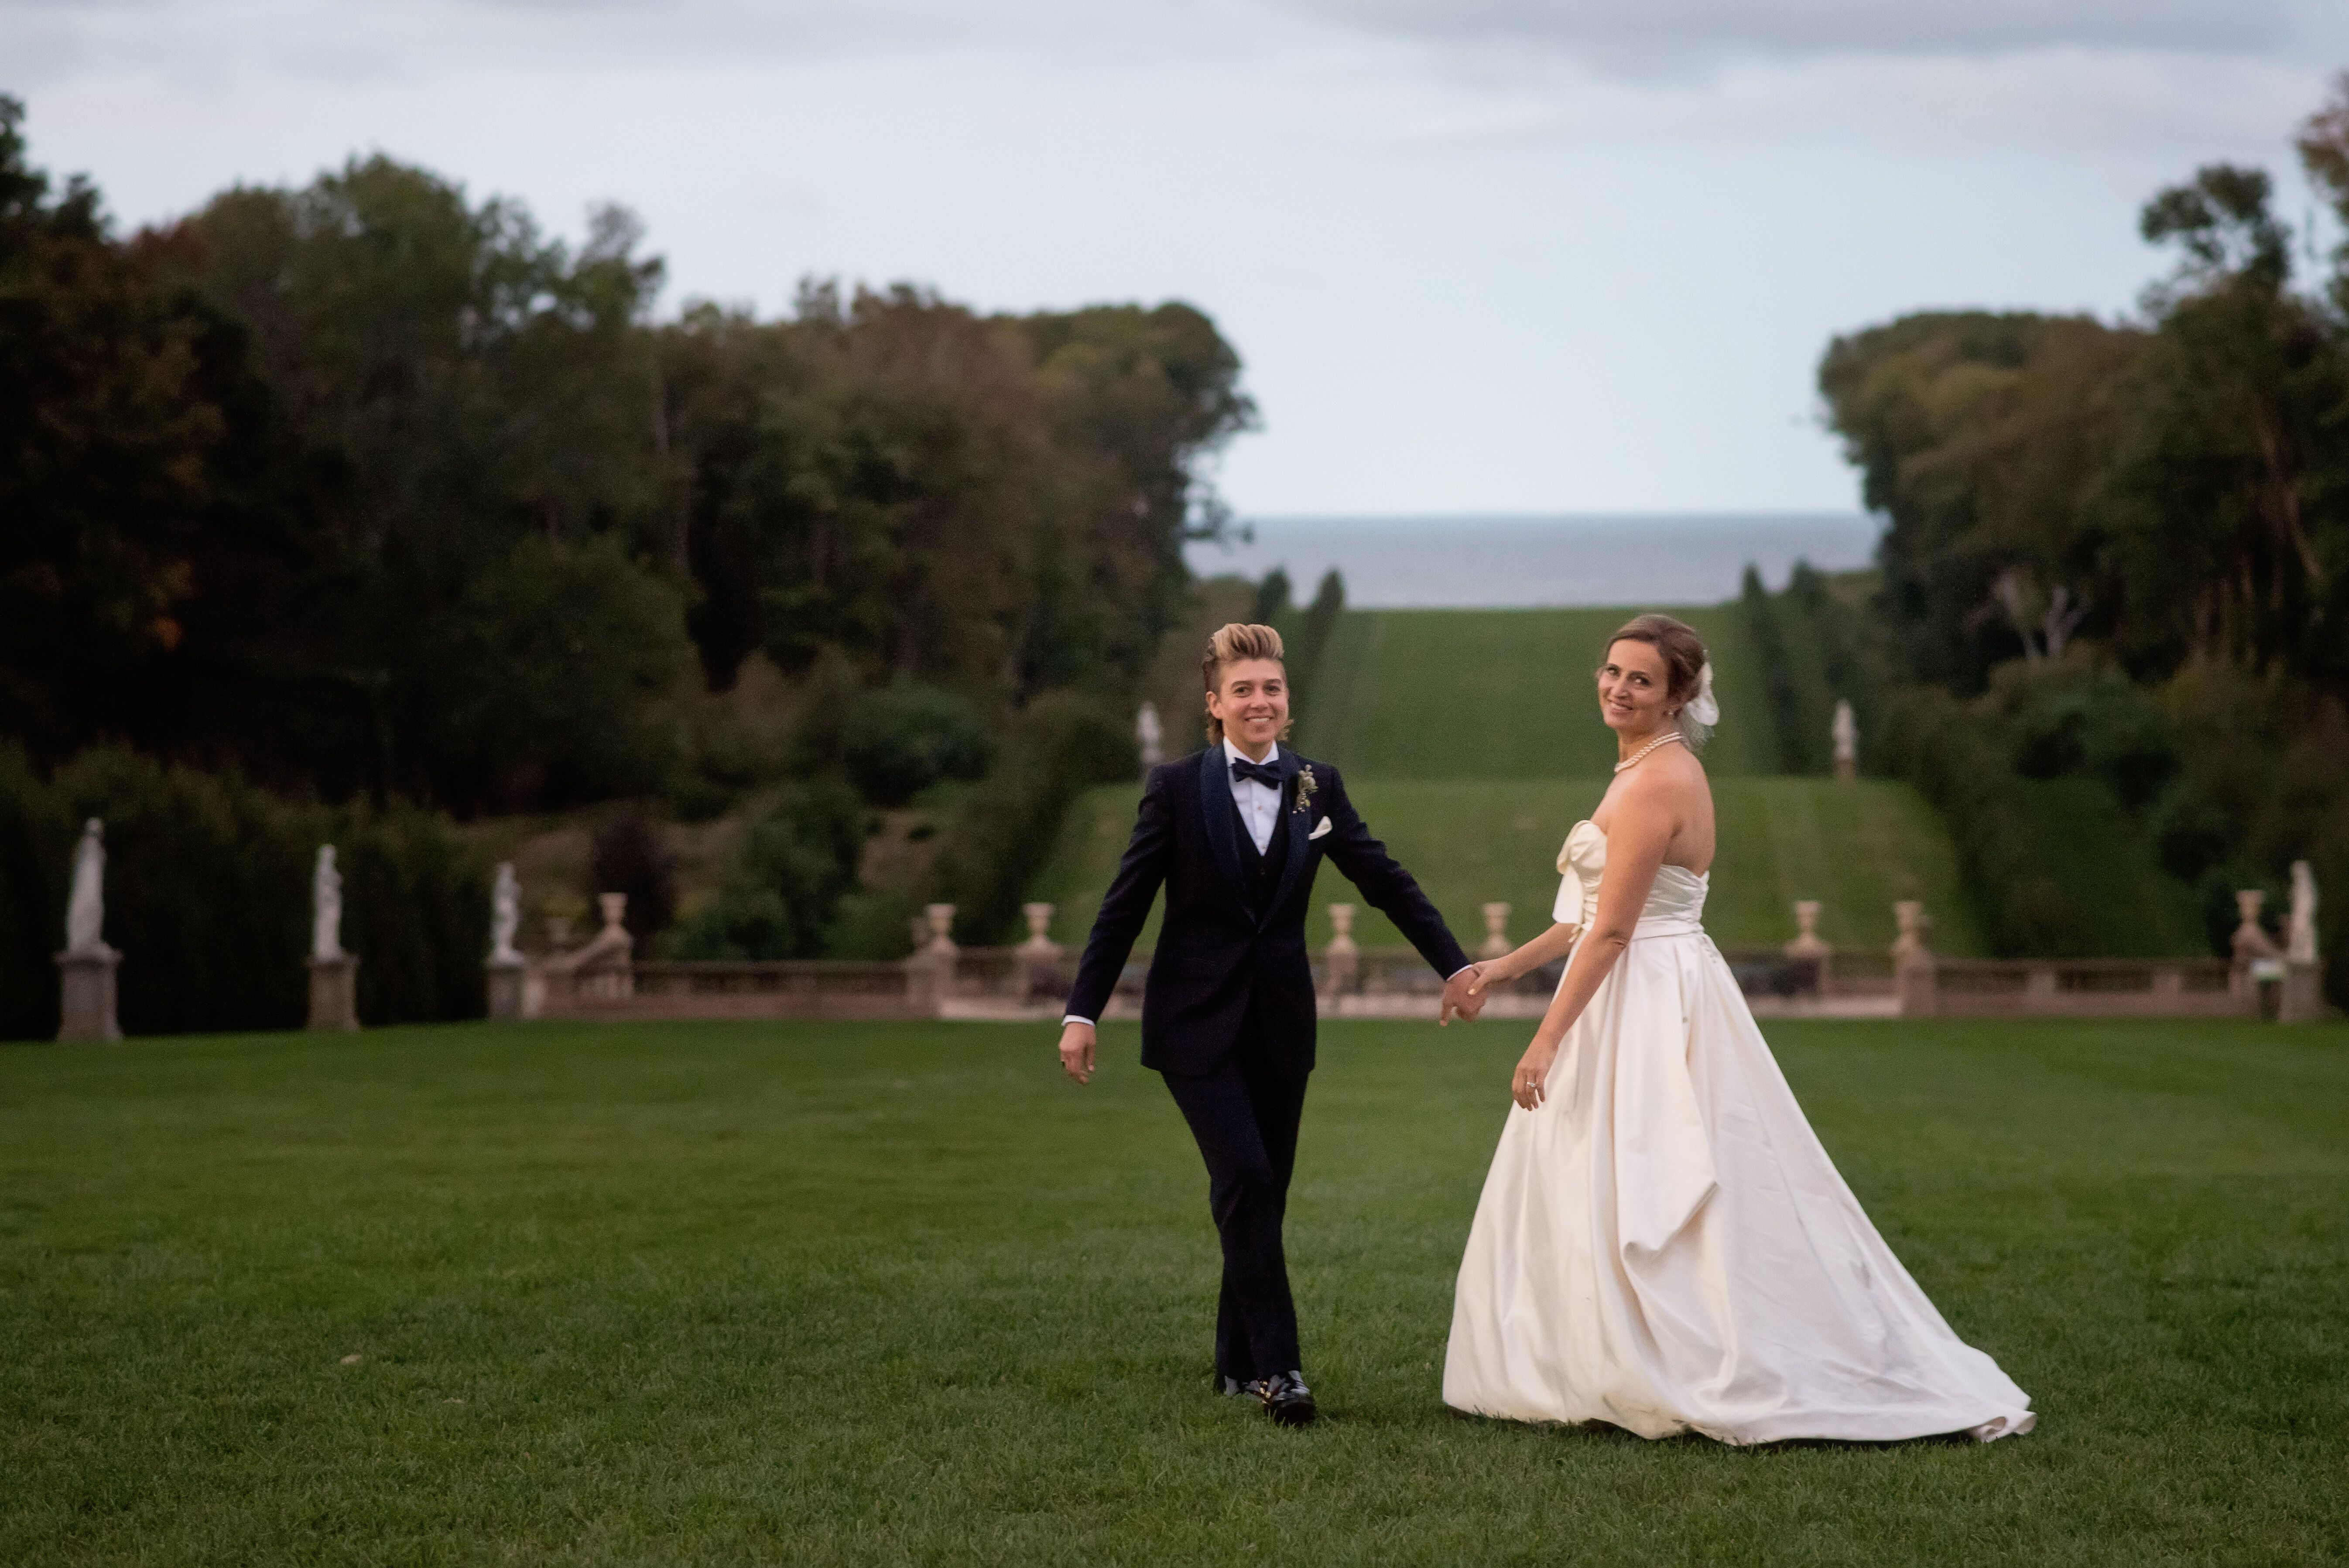 Wedding Invitations Castle Hill: A Whimsical, Formal Wedding At Castle Hill At Crane Estate